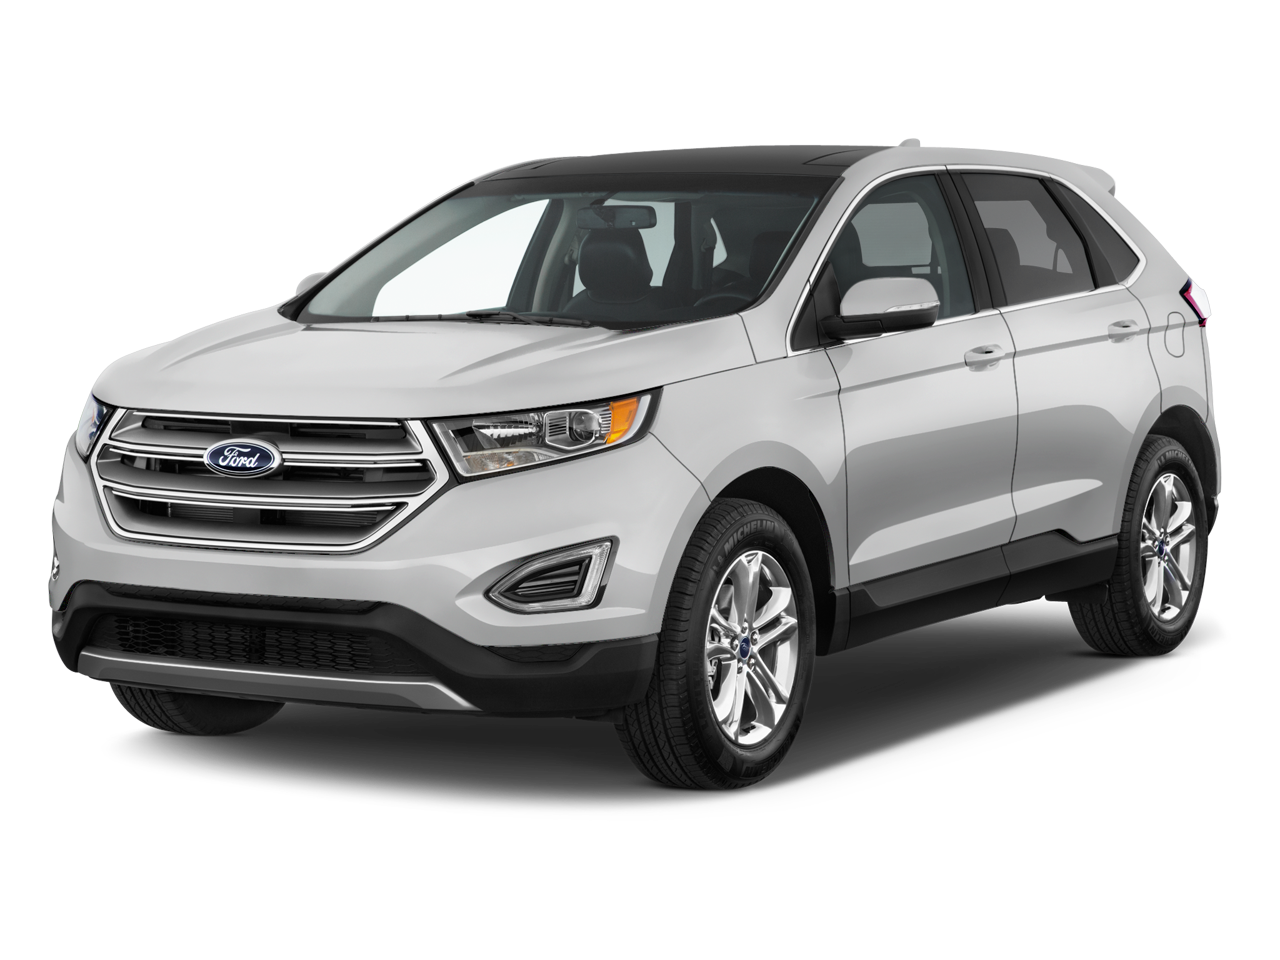 new 2017 ford edge sel near garland tx prestige ford. Black Bedroom Furniture Sets. Home Design Ideas